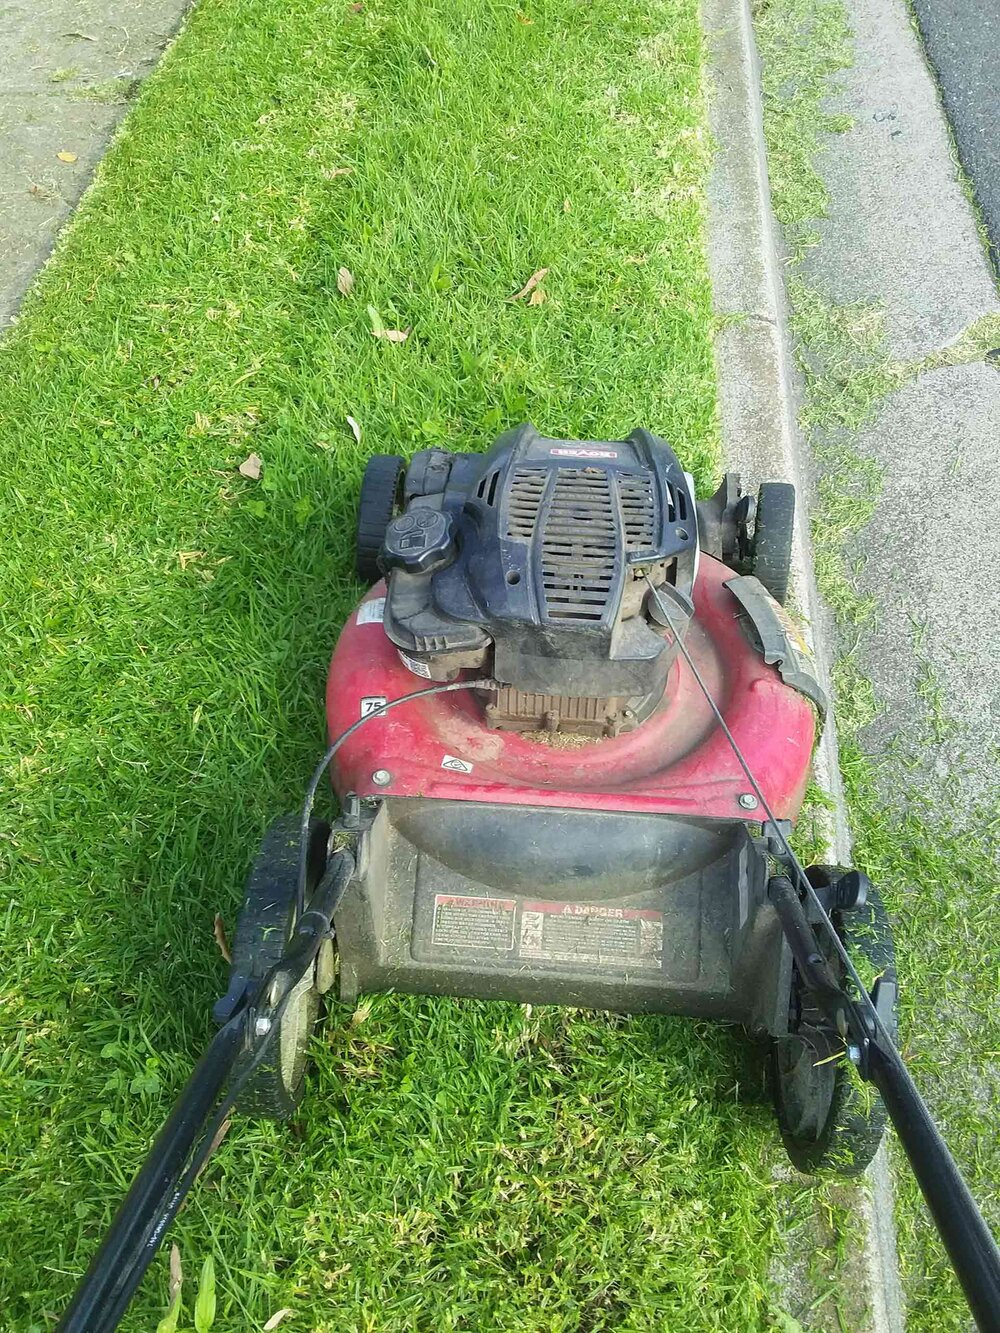 No catcher and no open chute: it's a mulch mower. Image via Plants Grow Here.